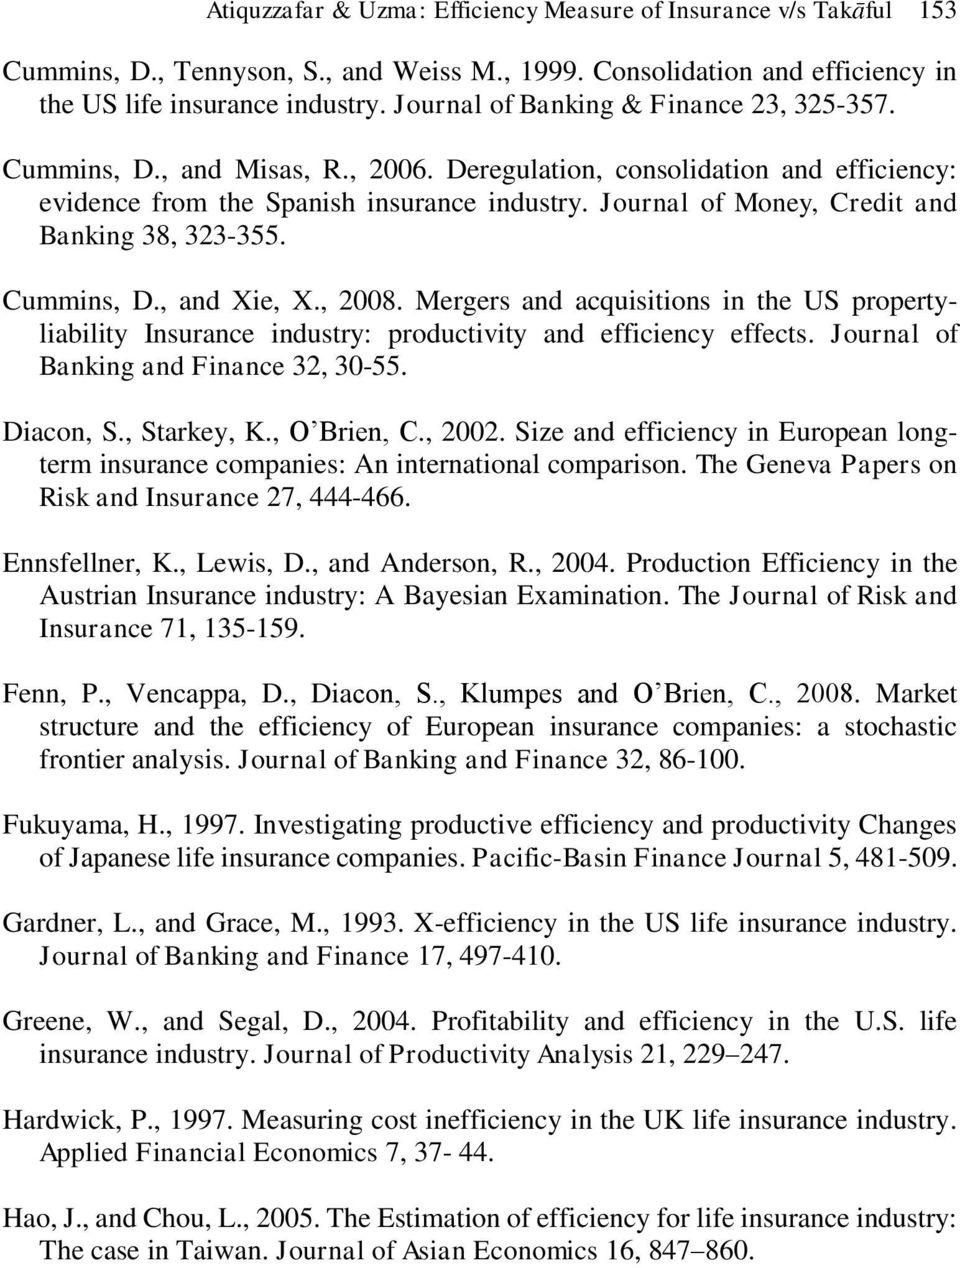 Journal of Money, Credit and Banking 38, 323-355. Cummins, D., and Xie, X., 2008. Mergers and acquisitions in the US propertyliability Insurance industry: productivity and efficiency effects.